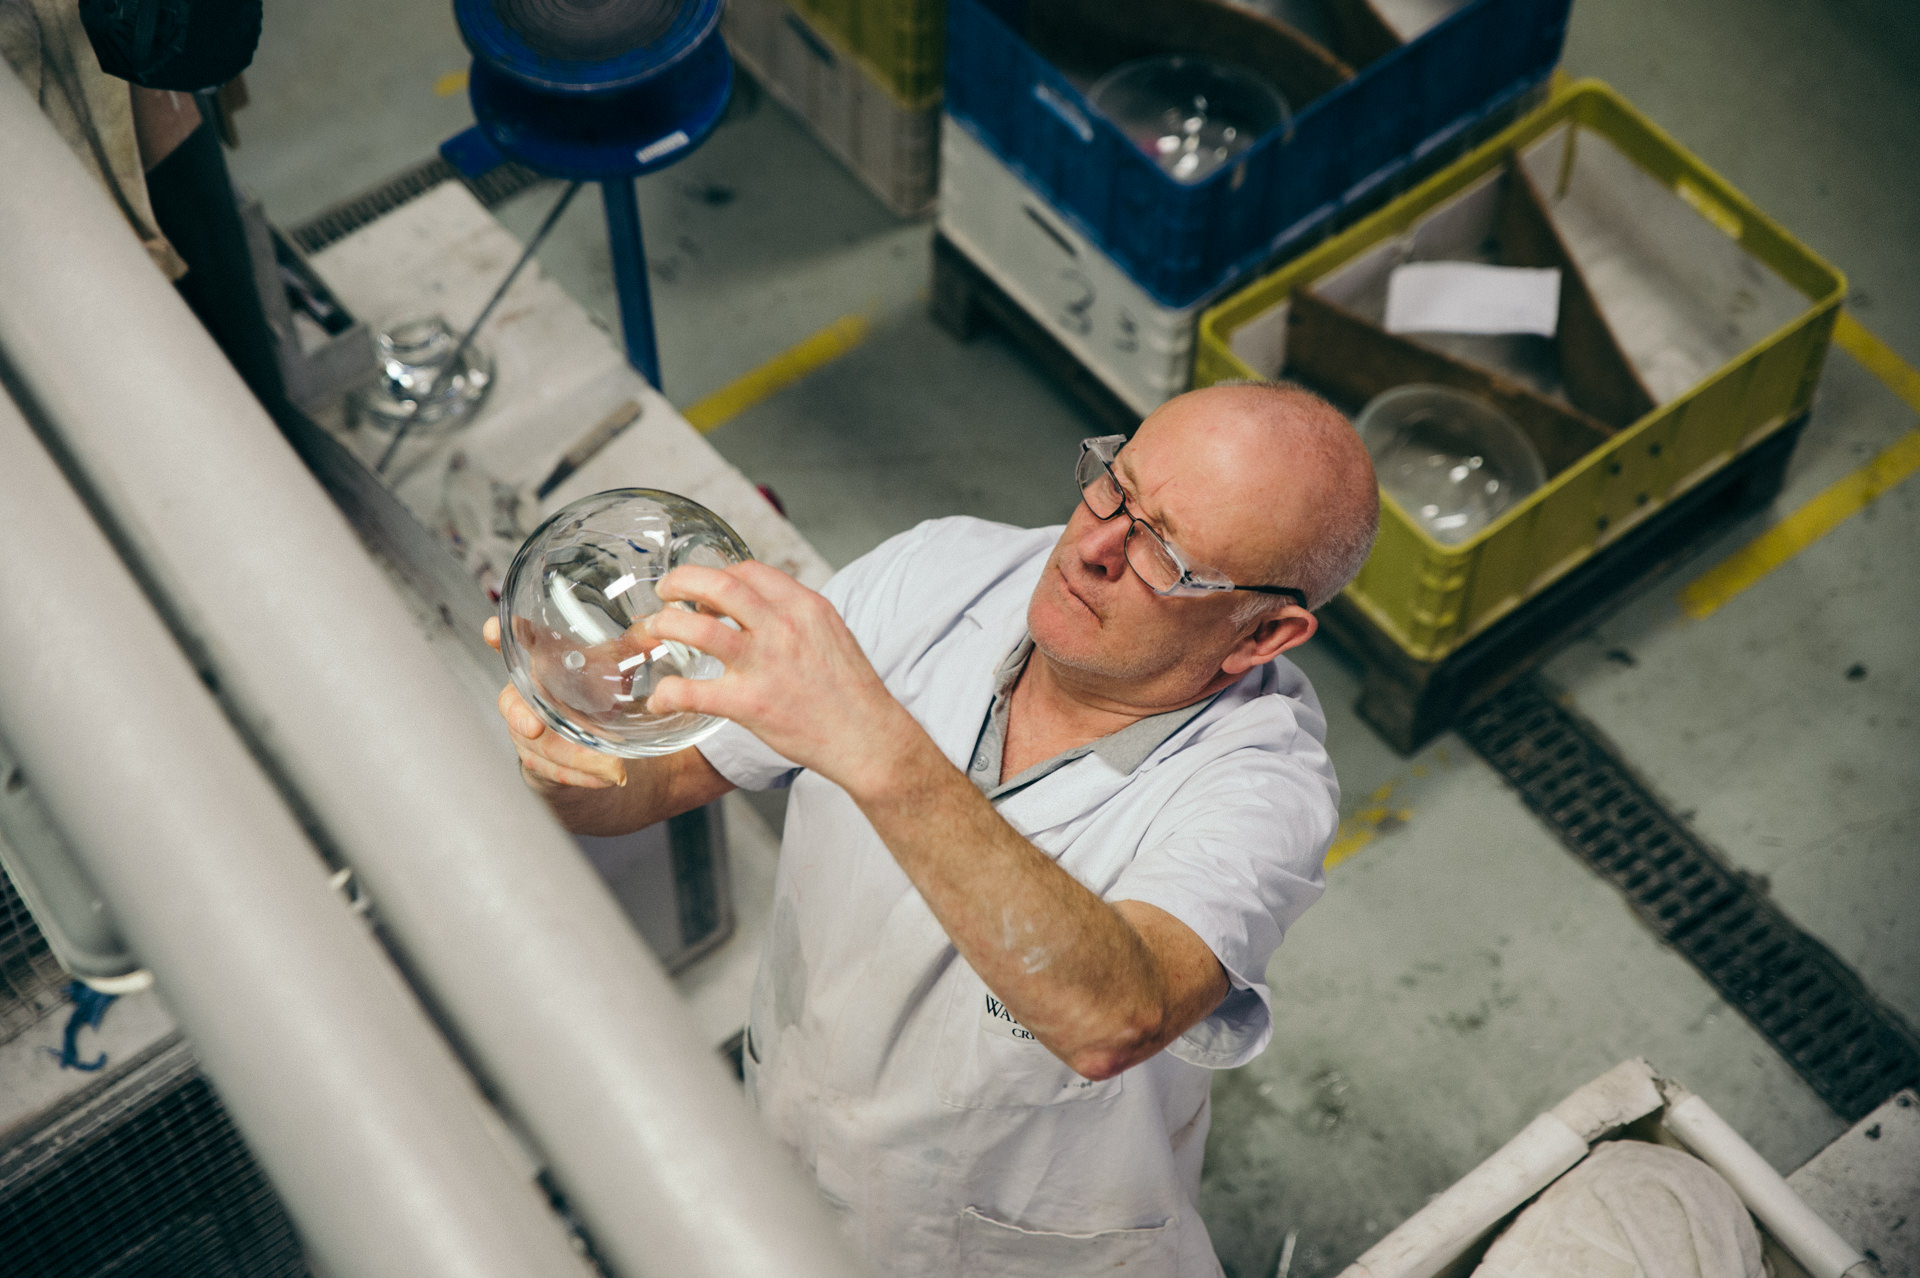 waterford crystal glass inspection